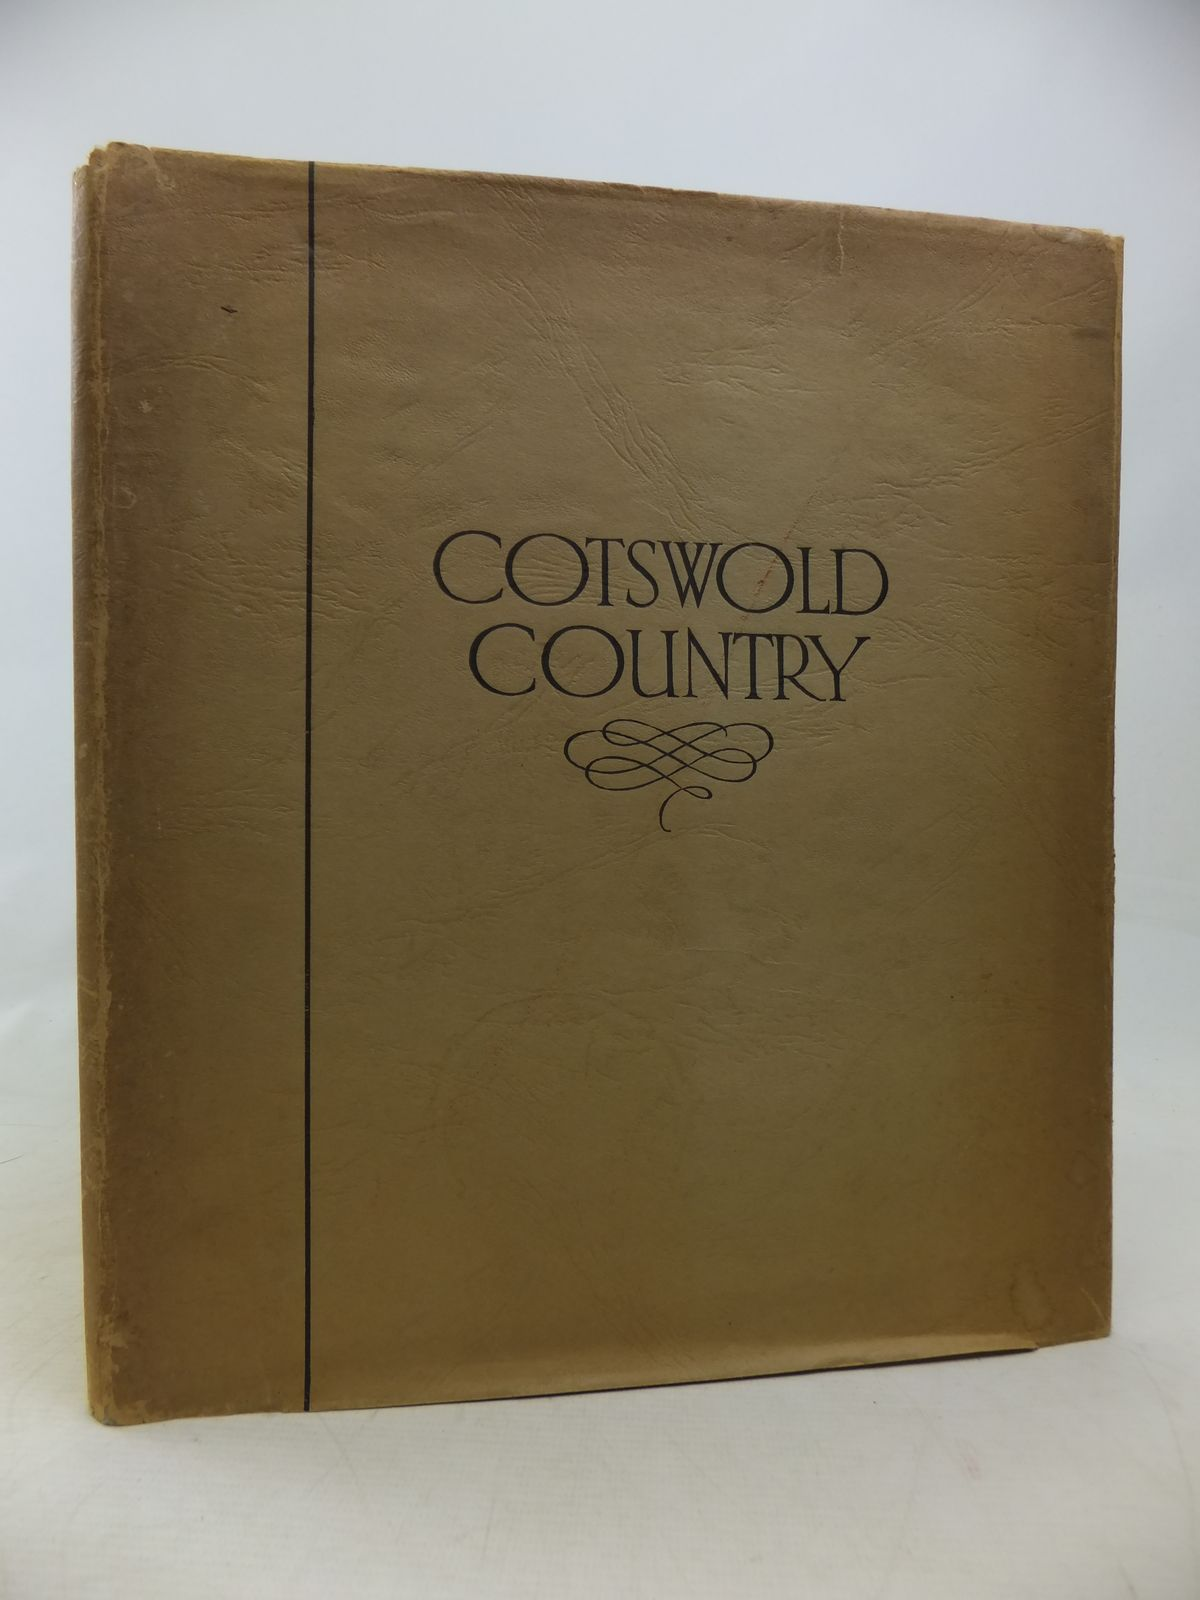 Photo of COTSWOLD COUNTRY written by Colyer, S.W. published by Ward Lock & Co Ltd. (STOCK CODE: 2115297)  for sale by Stella & Rose's Books